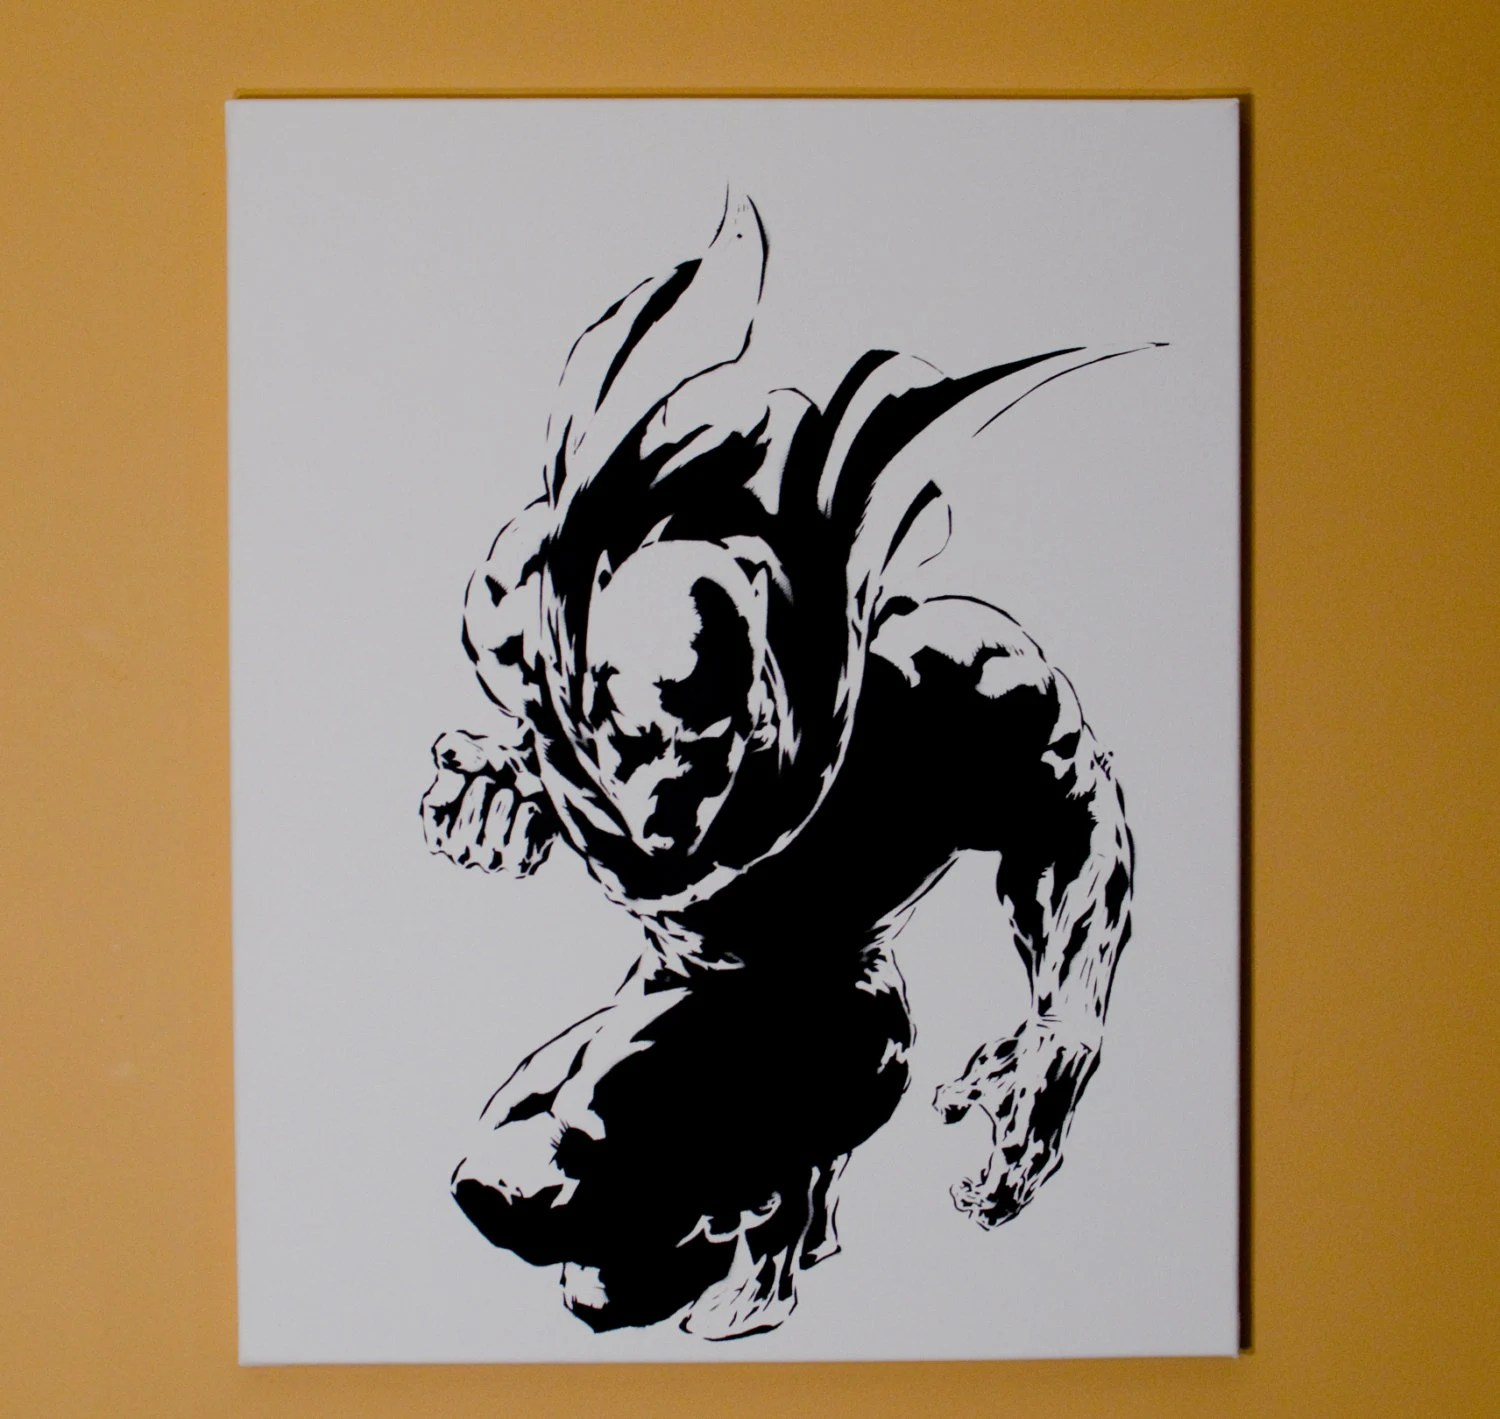 Black Panther Art Spray Paint from Handmade Stencil Black Etsy